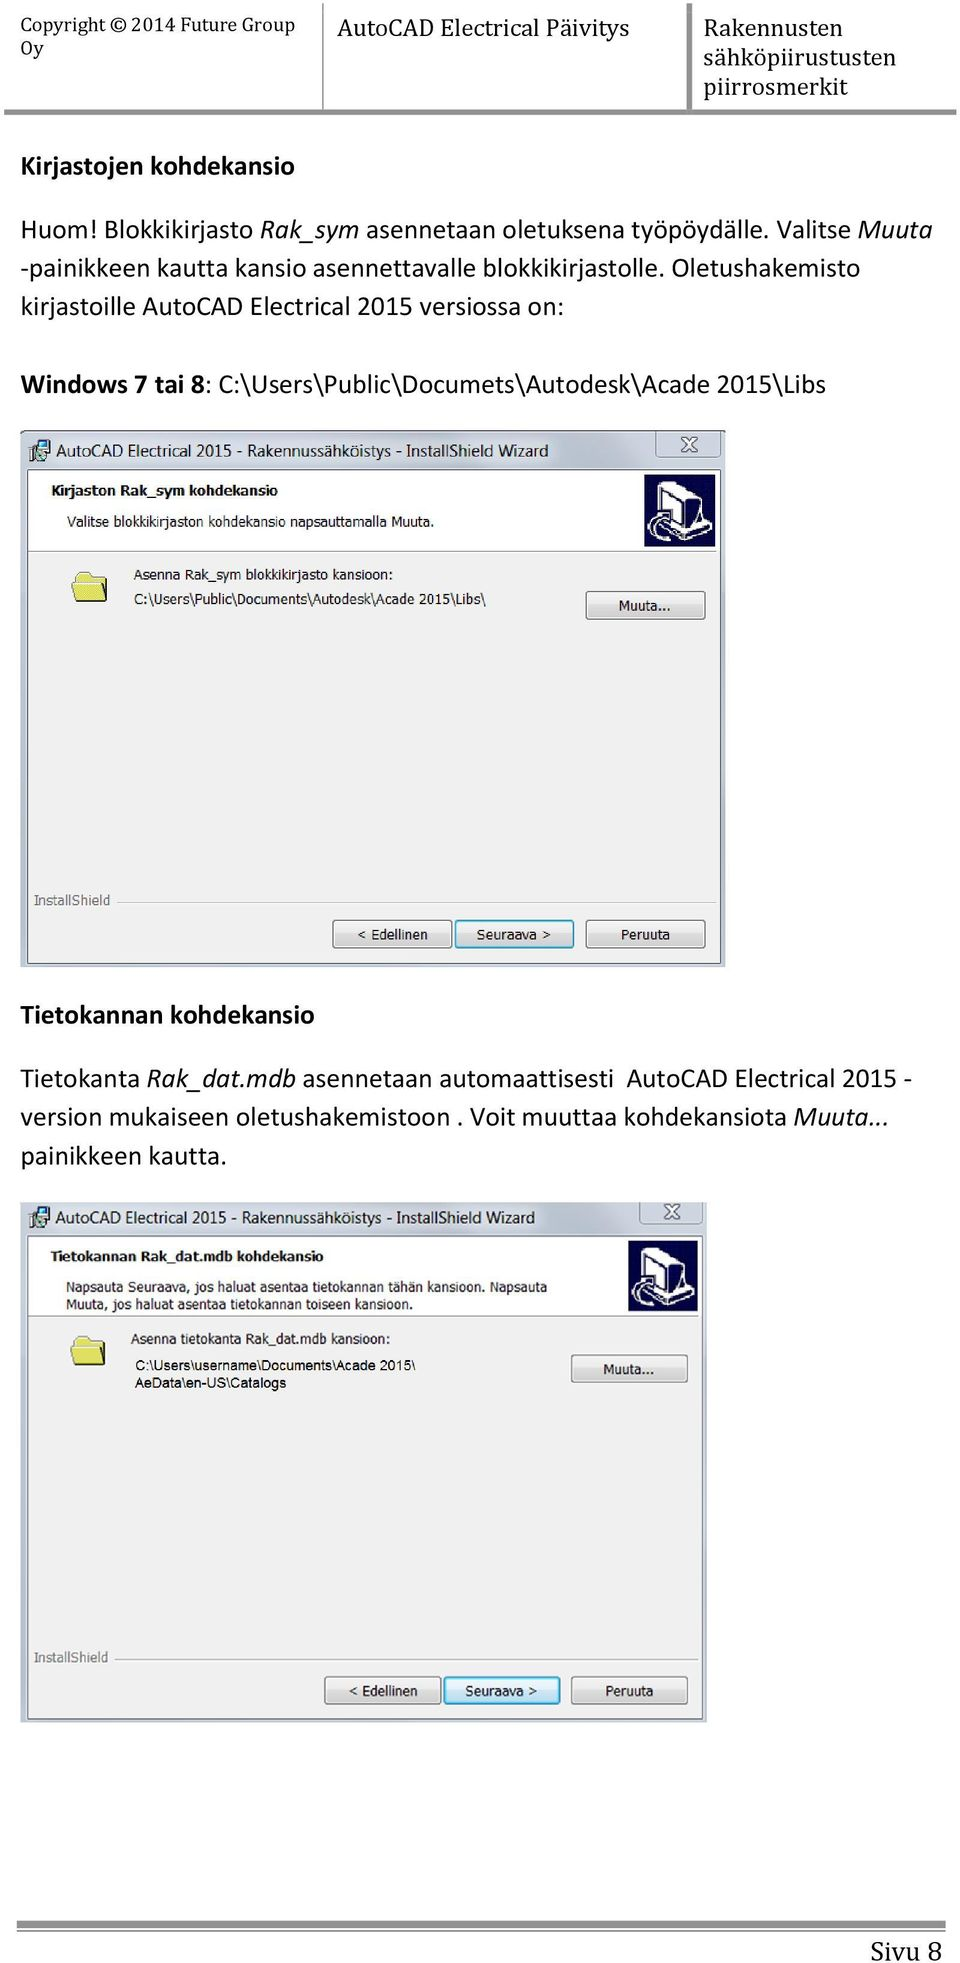 Oletushakemisto kirjastoille AutoCAD Electrical 2015 versiossa on: Windows 7 tai 8: C:\Users\Public\Documets\Autodesk\Acade